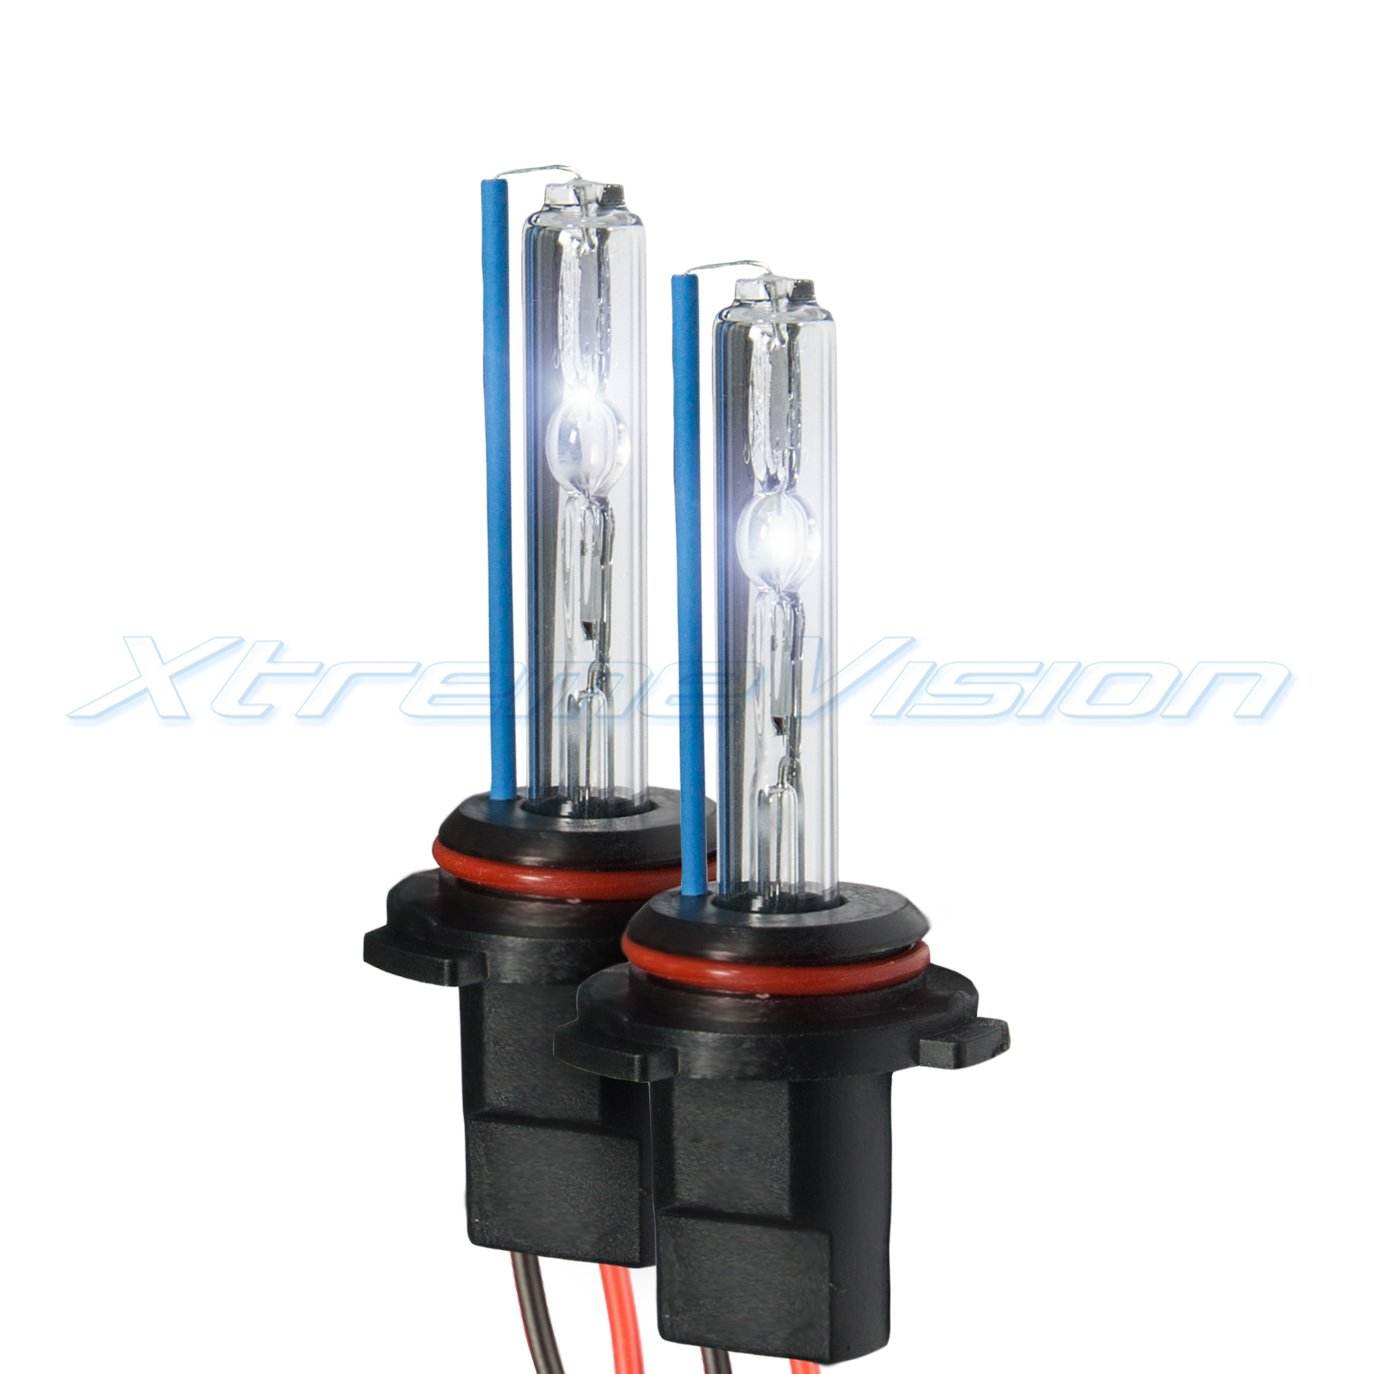 XtremeVision HID Xenon Replacement Bulbs - 9006 4300K - Bright White (1 Pair) - 2 Year Warranty